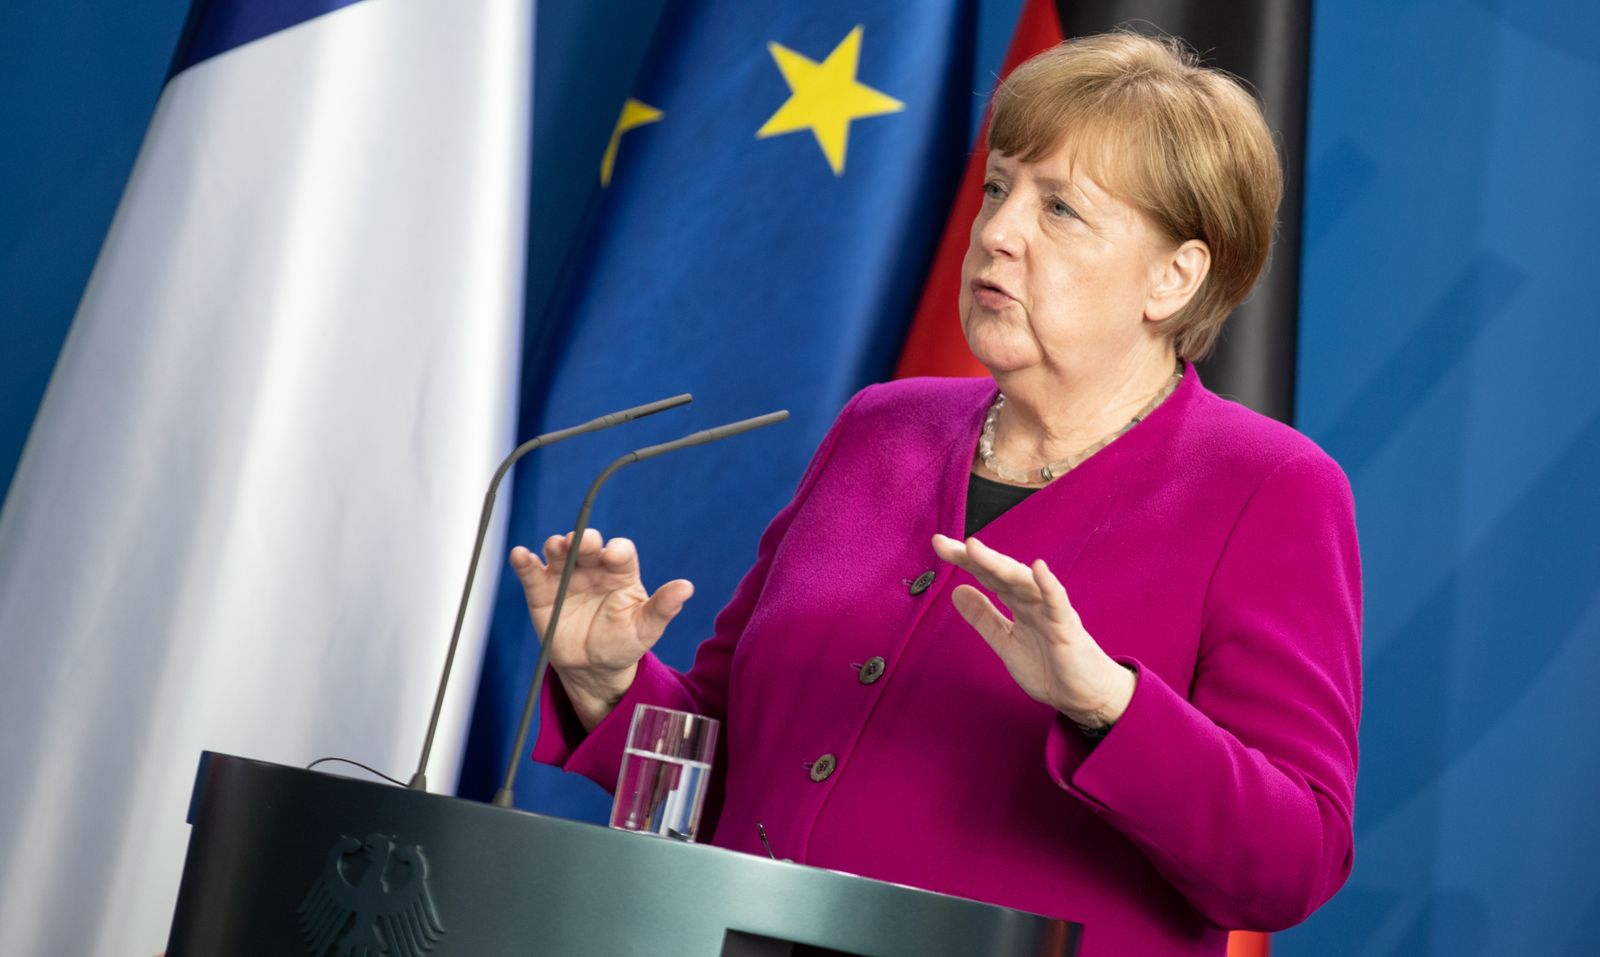 Germany, France propose 500 billion euro European stimulus package, Berlin - 18 May 2020